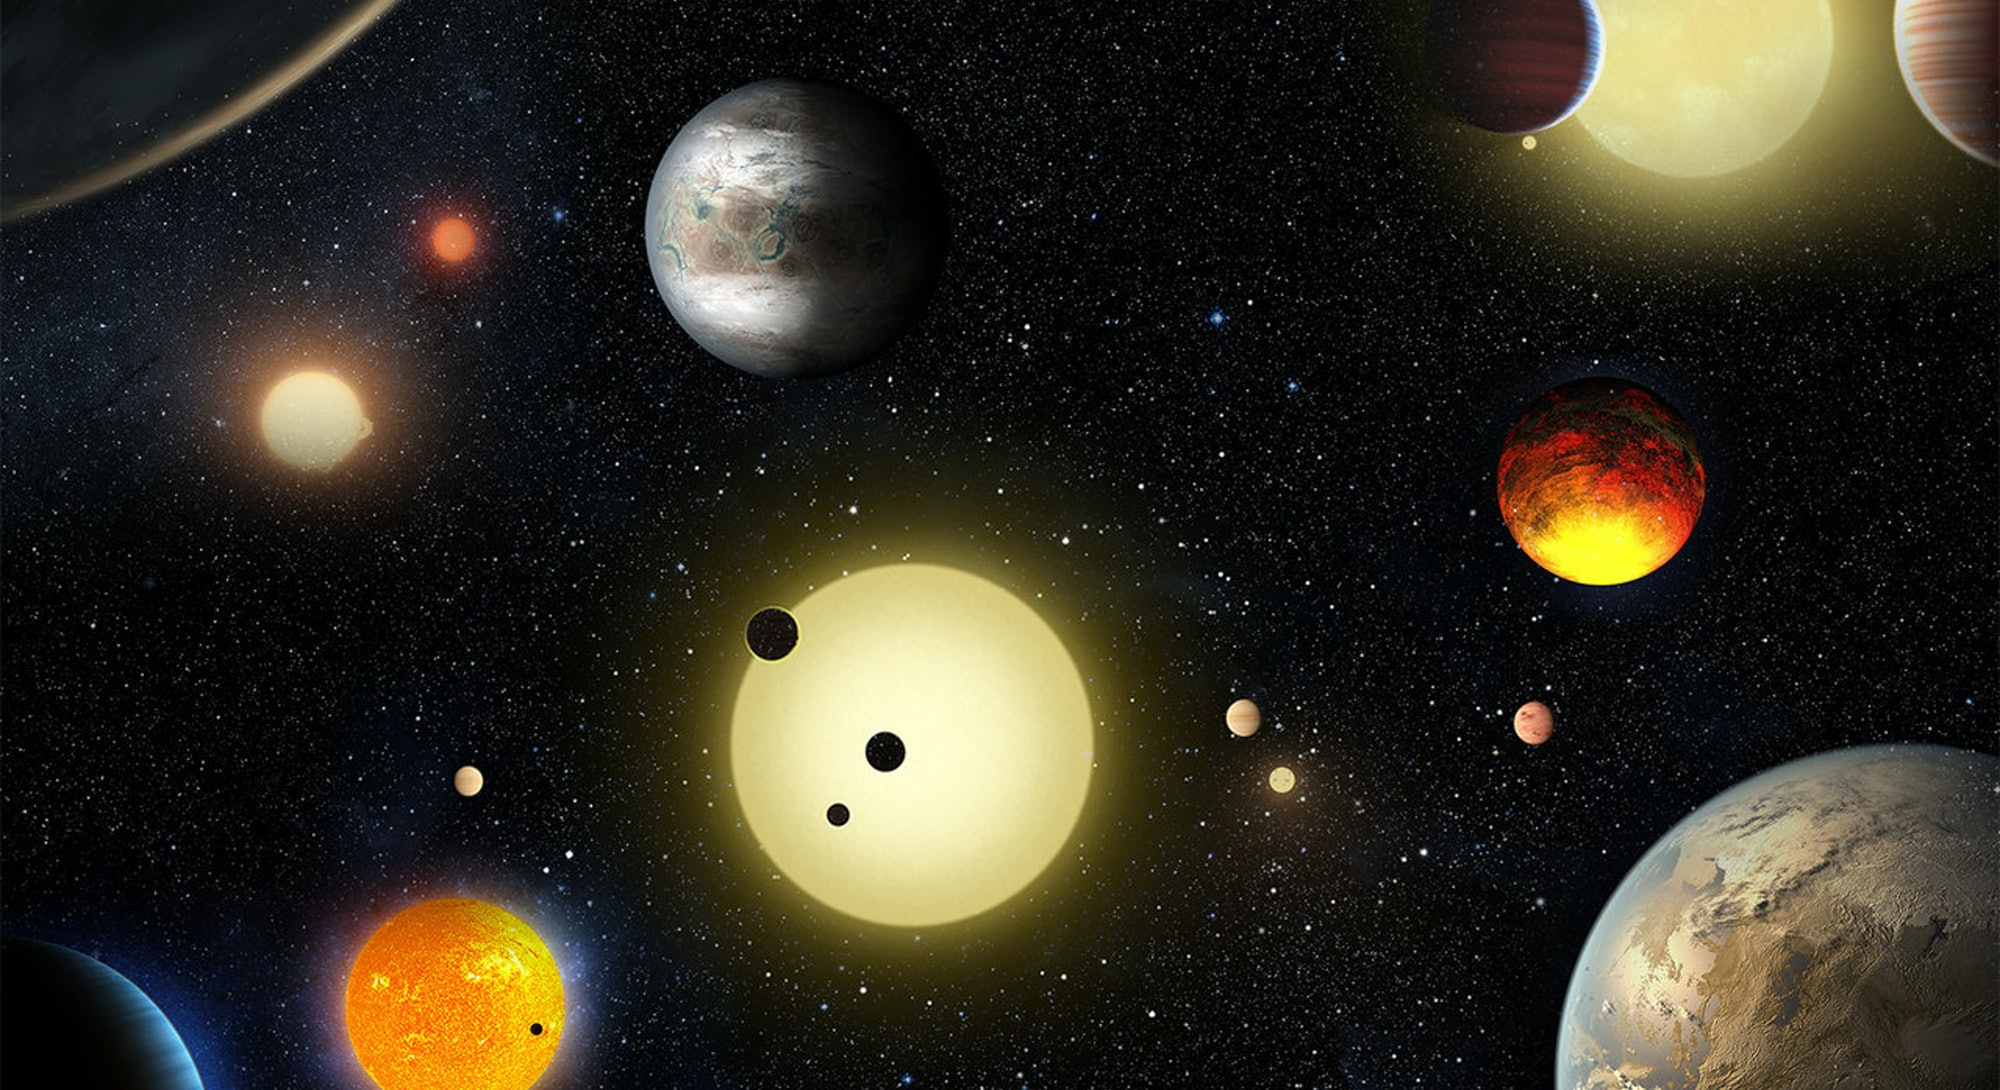 An illustration of exoplanets in the universe.